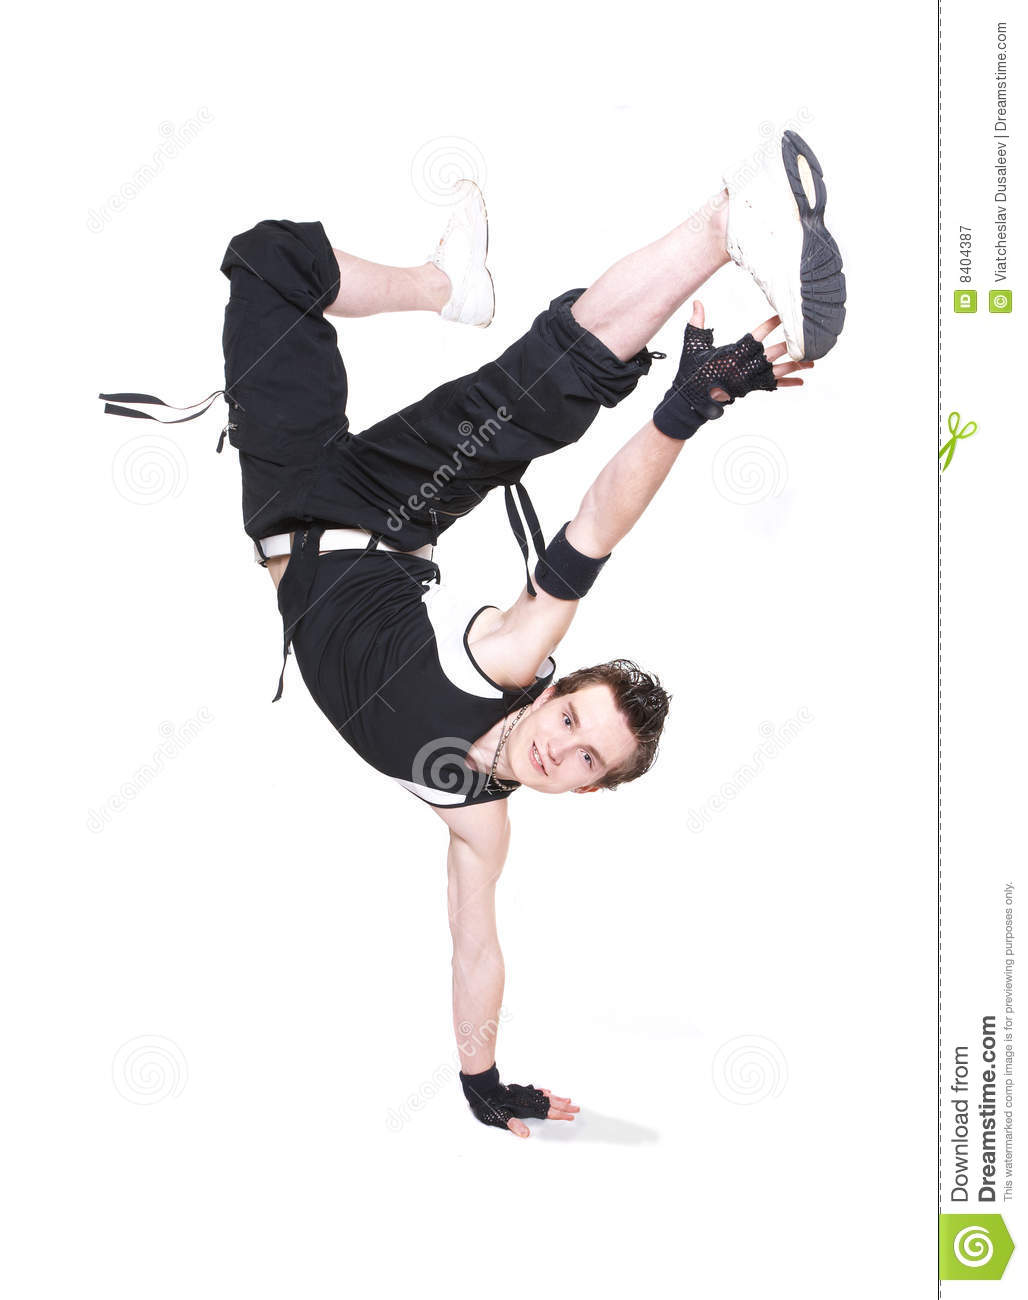 Stylish Break-dance Dancer. Royalty Free Stock Photography ...